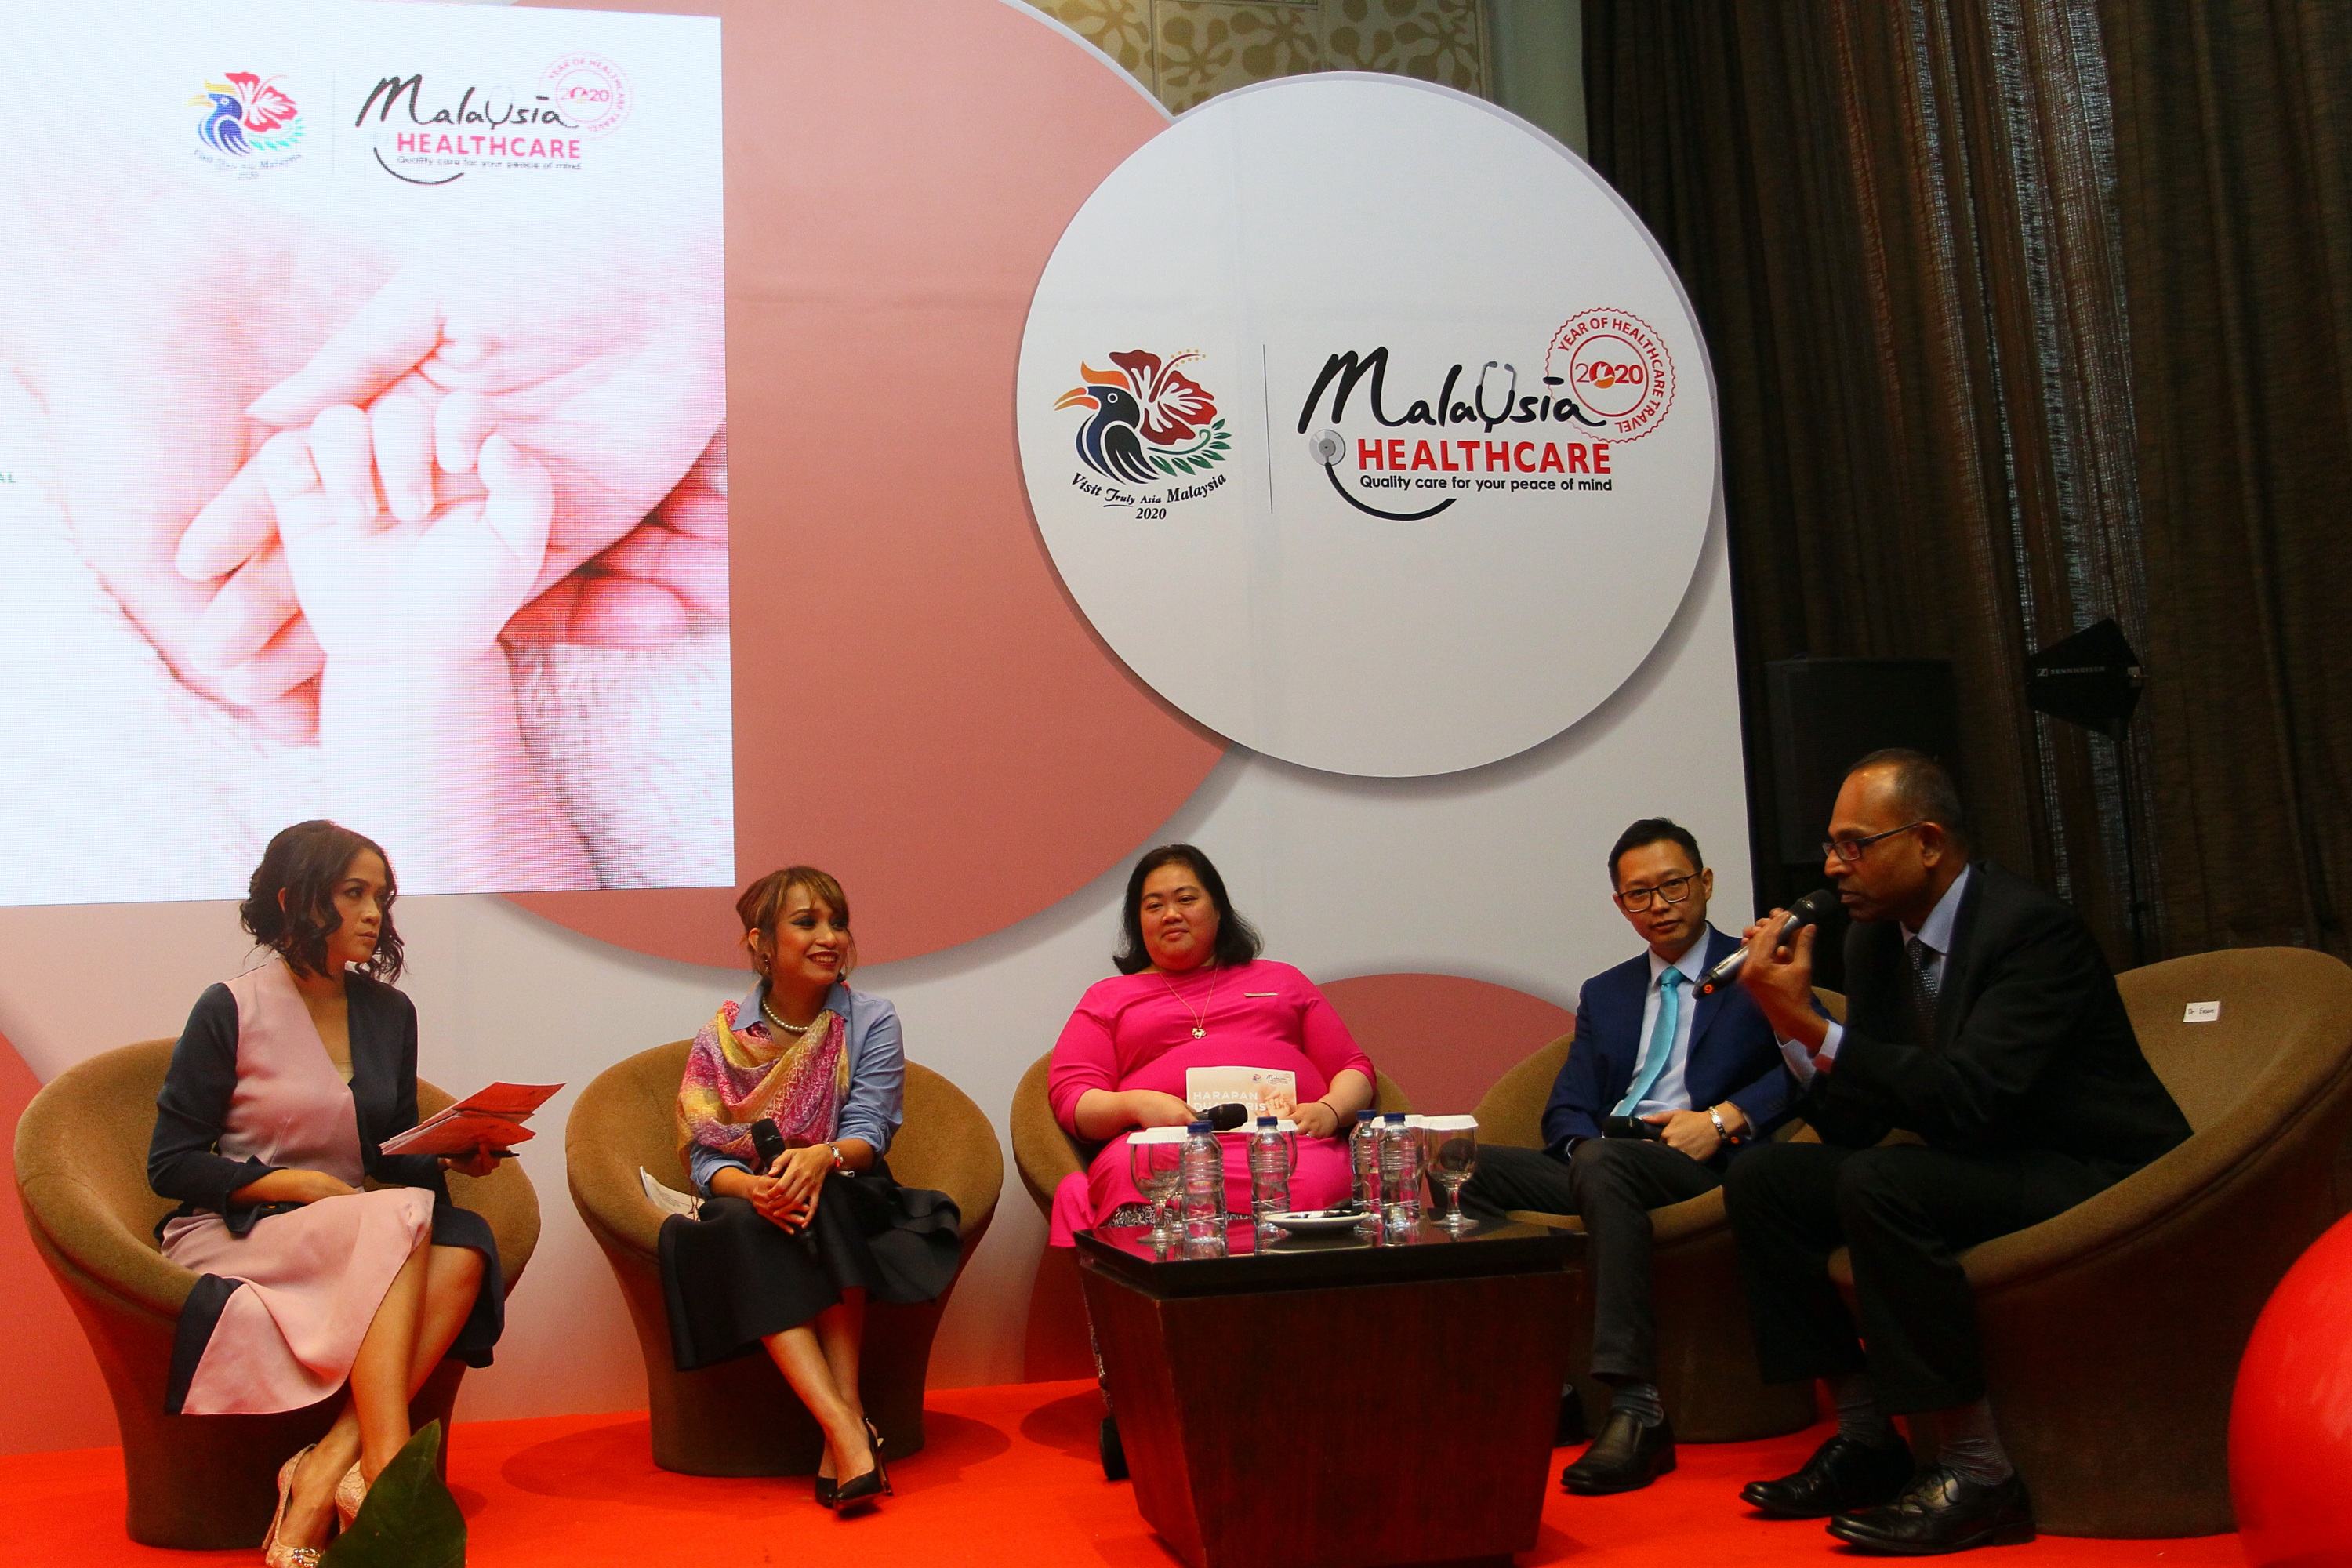 hadir pada talkshow kemarin, dari kanan ke kiri Dr. Eeshon Shintamoney from Sunfert International Fertility Centre, Dr. Lam Wei Kian from Alpha Fertility Centre, Nik Yasmin Nik Azman, CCO MHTC, Ms.Jochbeth Selvy Wirata, IVF Warrior, Master of Ceremony